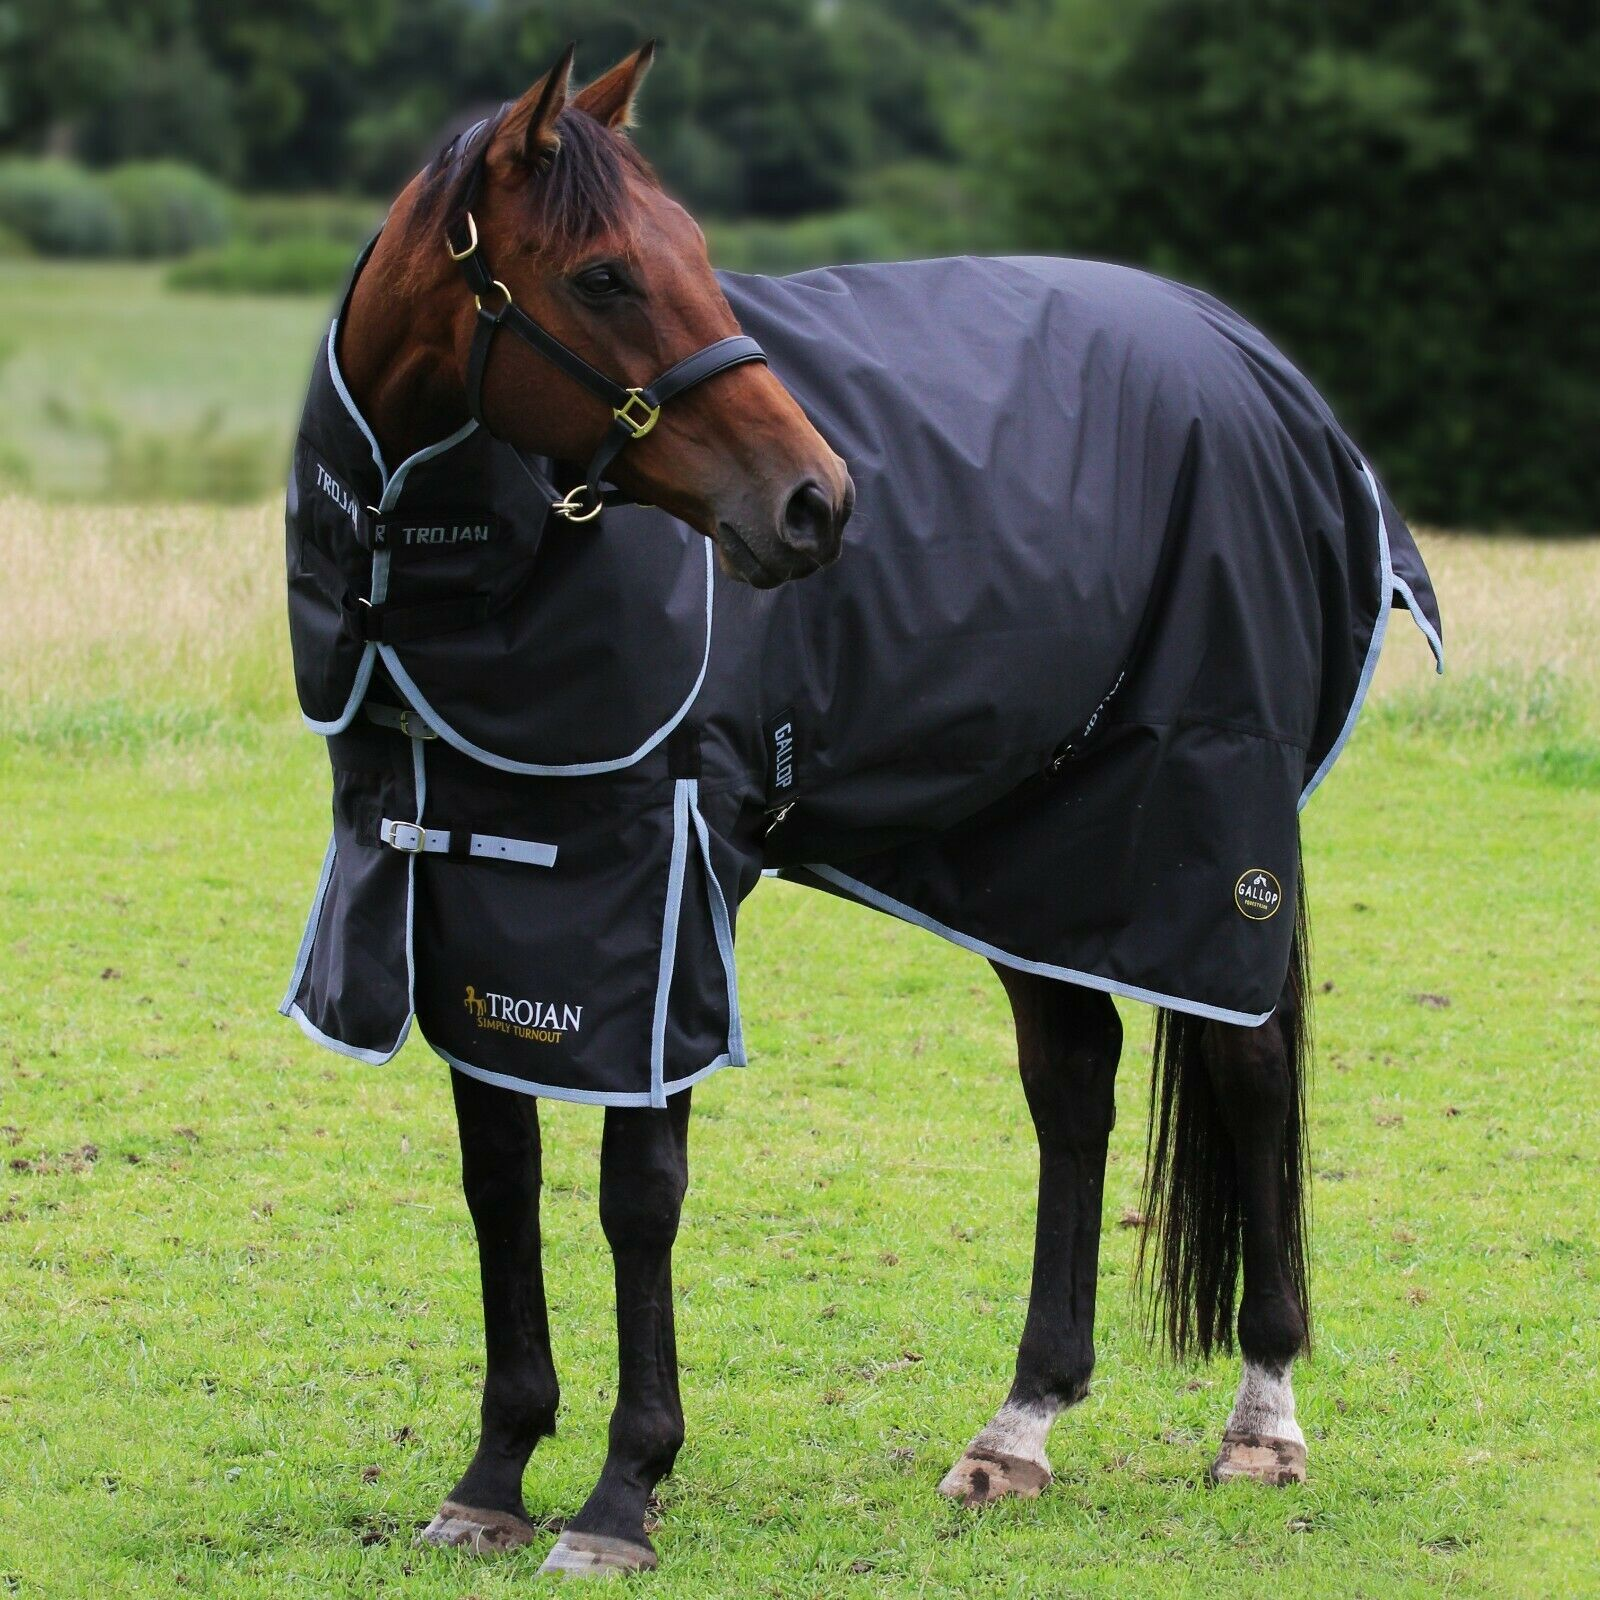 Gallop Trojan 300g Heavyweight Horse Turnout Rug and Detachable Neck Set Winter